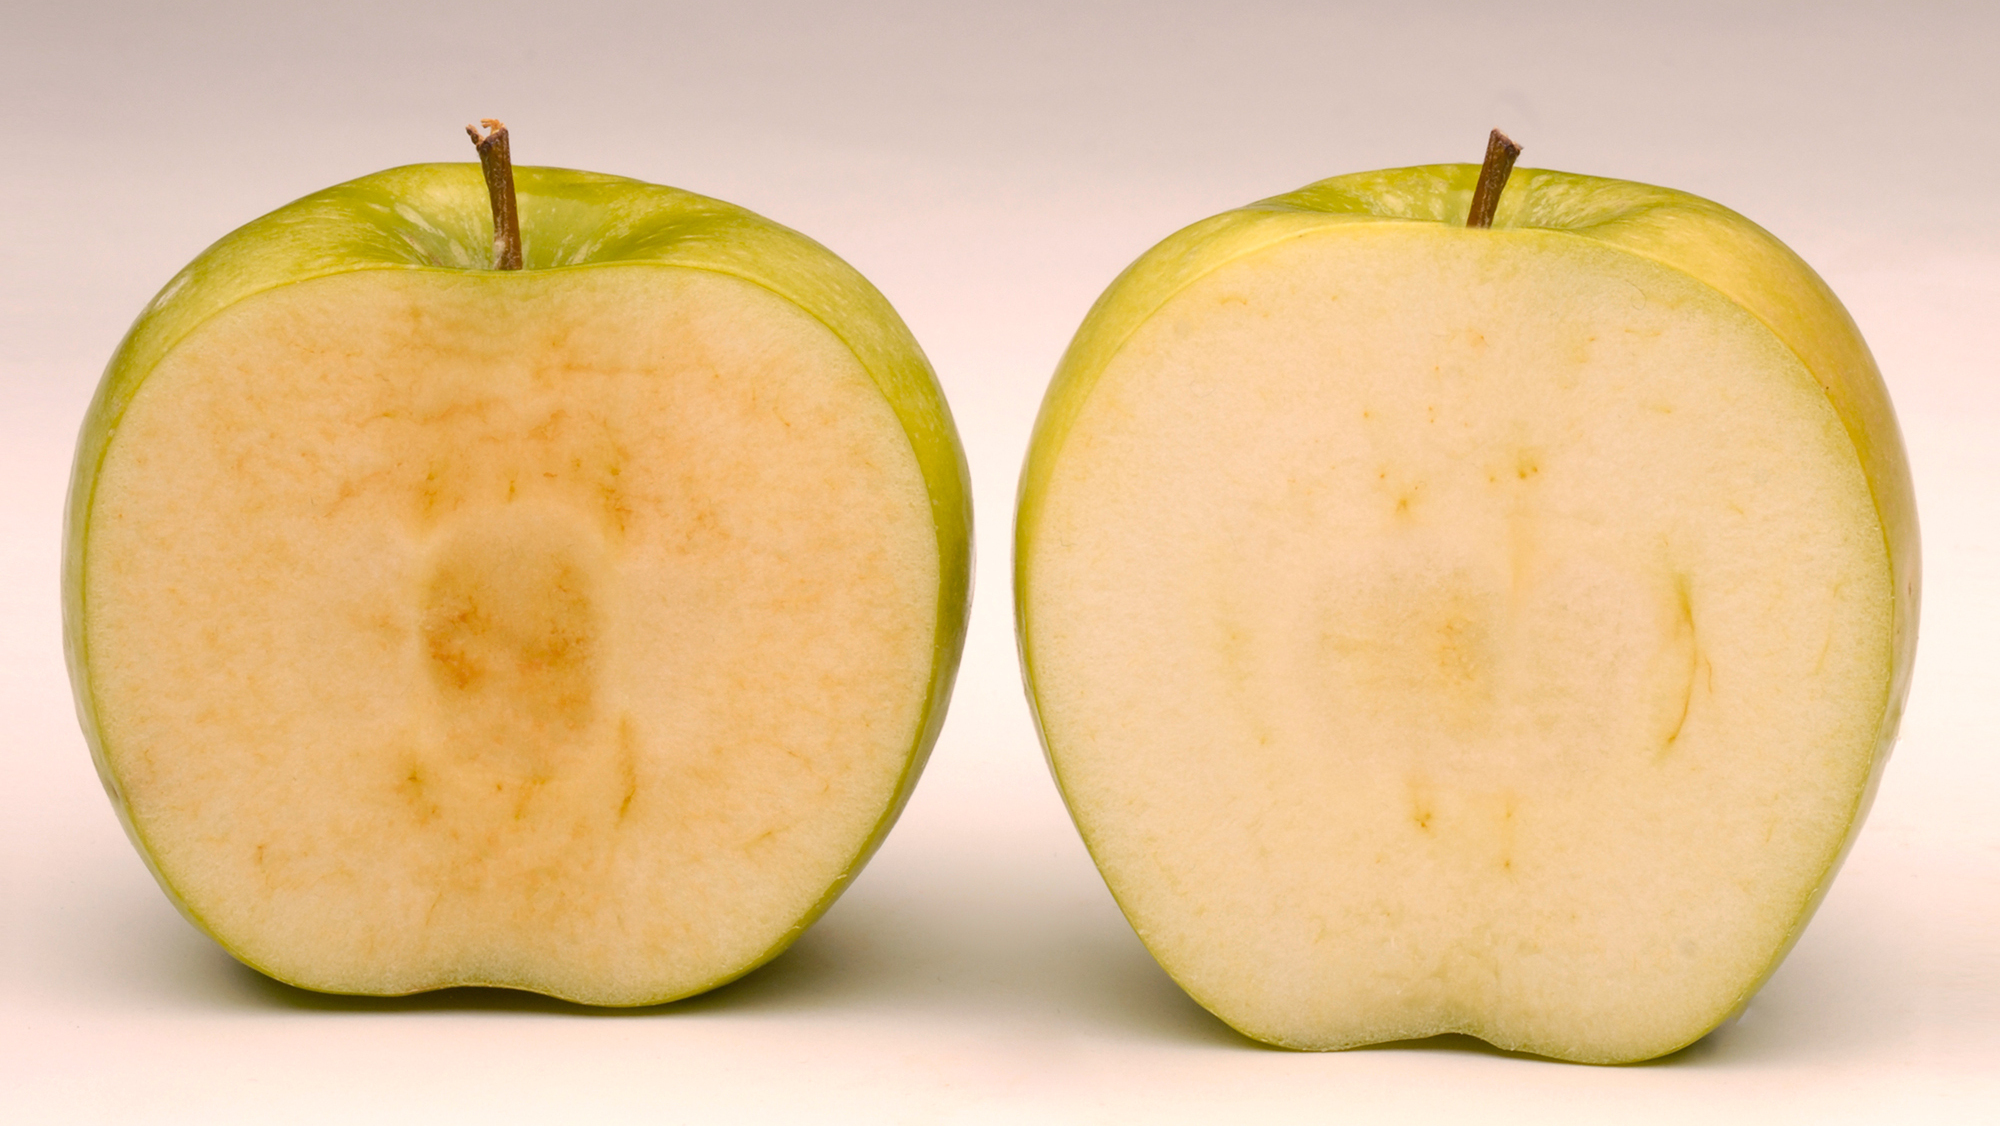 GMO Apples Get The Nod, But Not Much Of A Welcoming Party